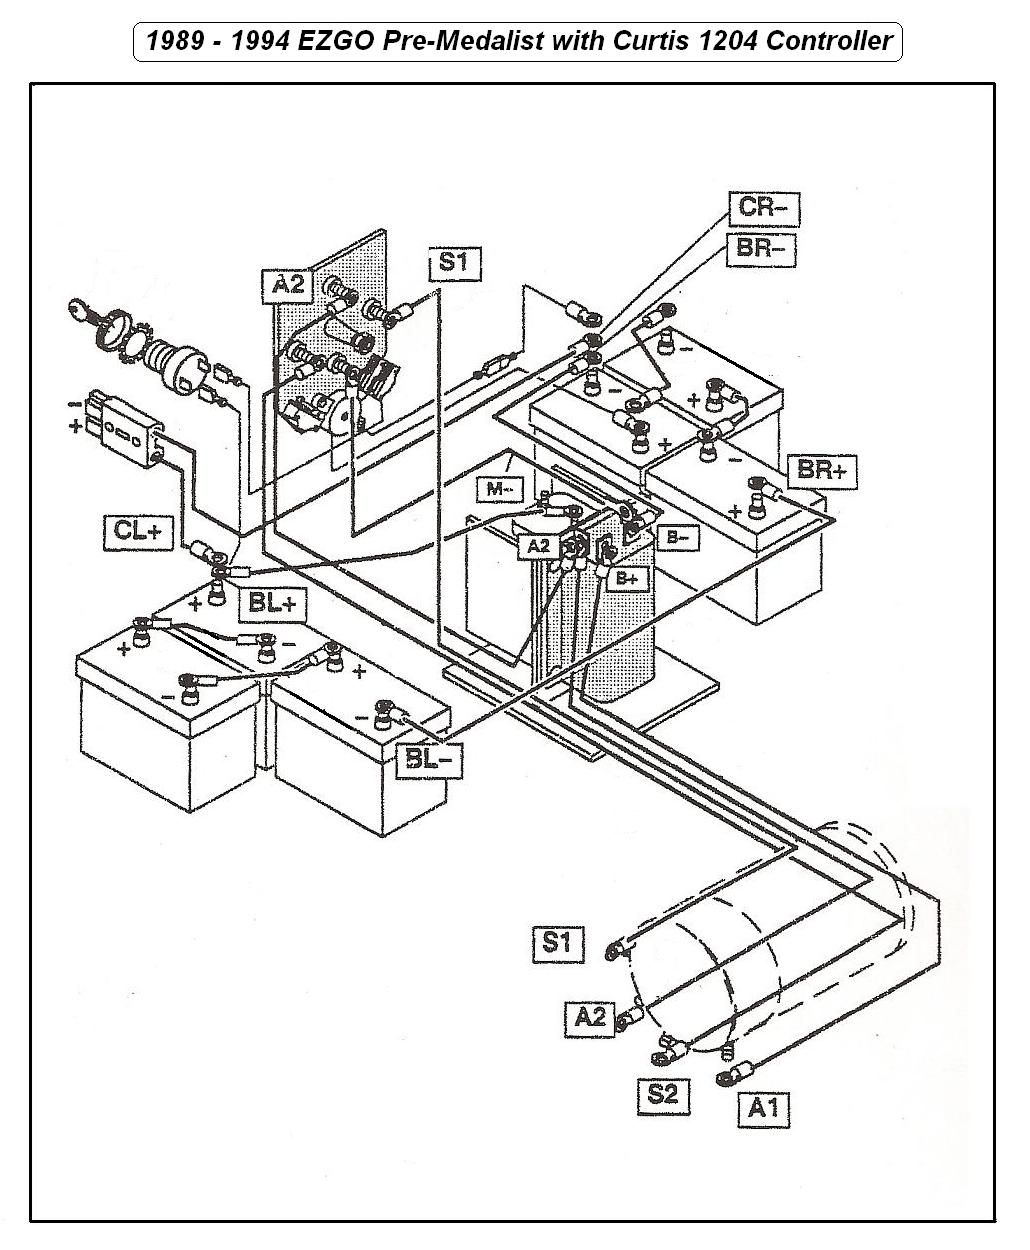 A89_94EZ_Wiring ezgo wiring diagram ezgo fuel pump \u2022 wiring diagrams j squared co ezgo golf cart wiring diagram at panicattacktreatment.co